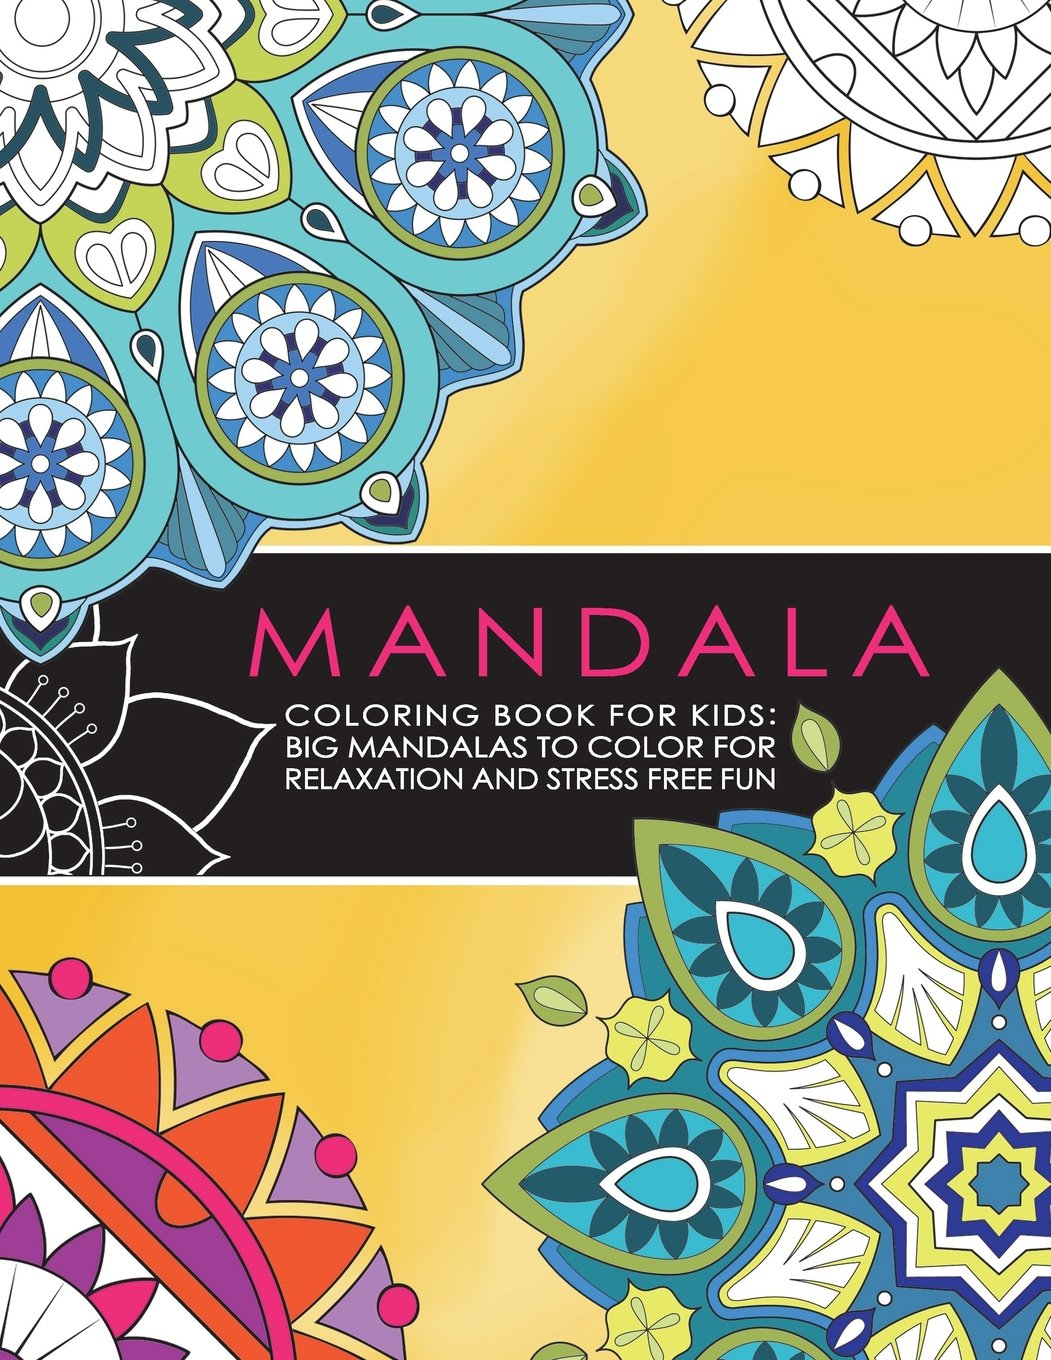 - Mandala Coloring Book For Kids: Big Mandalas To Color For